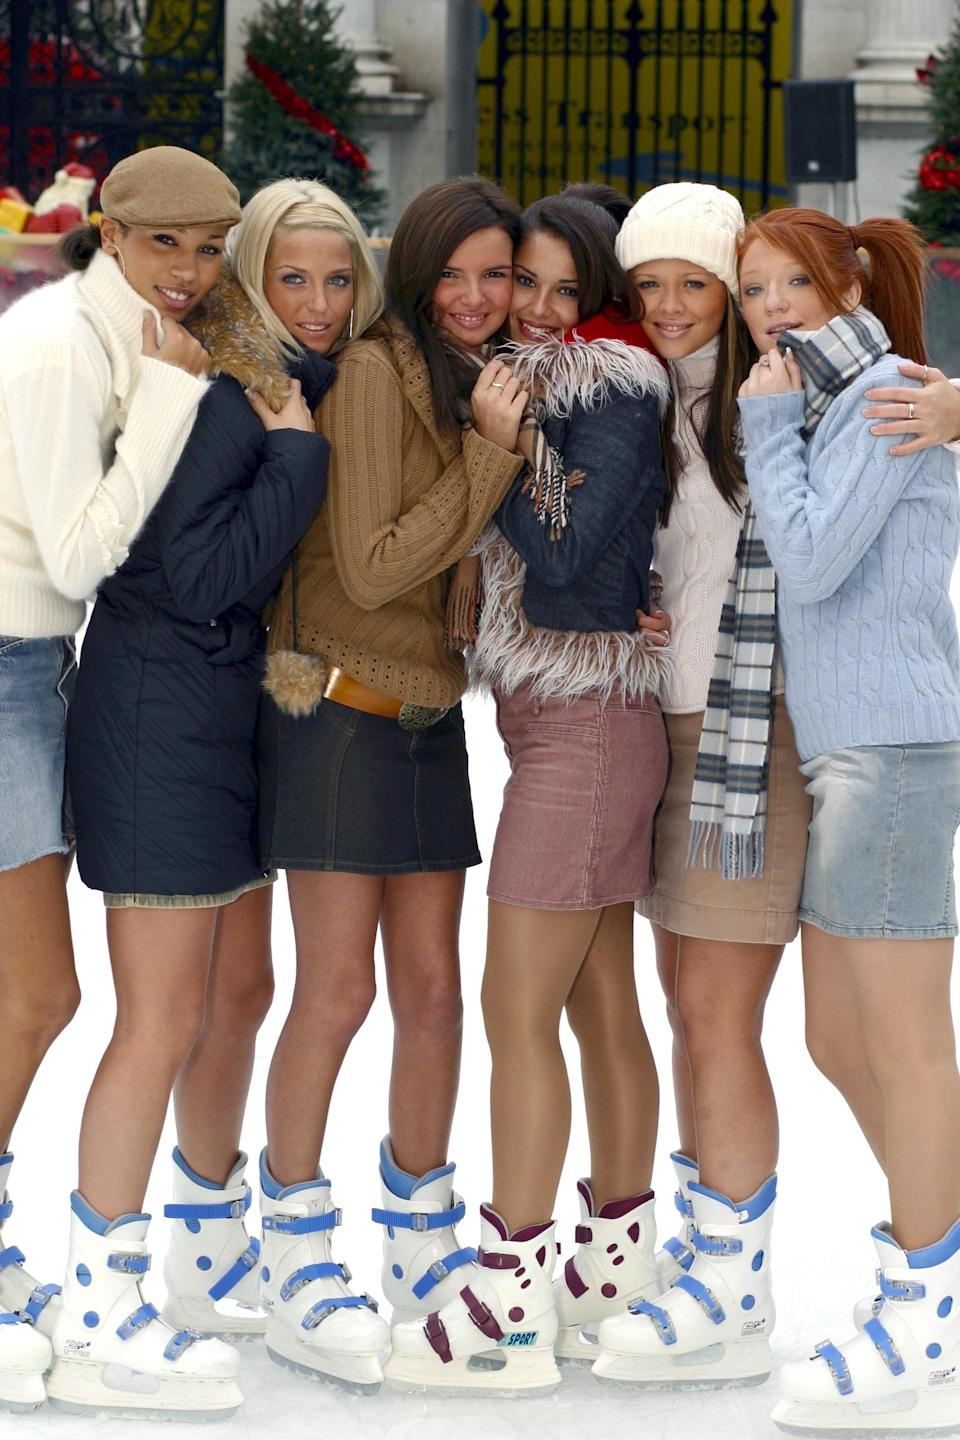 With so many throwaway acts coming from shows like 'The X Factor' and 'The Voice', it's a wonder that ITV only ever did one series of the show that brought us Girls Aloud, seeing the public creating one girl group and one boyband to pit against each other in the charts.<br /><br />Of course, it may well be because One True Voice - the series' boyband - ended up having a shorter career than novelty act The Cheeky Girls, who also got a start on the show.